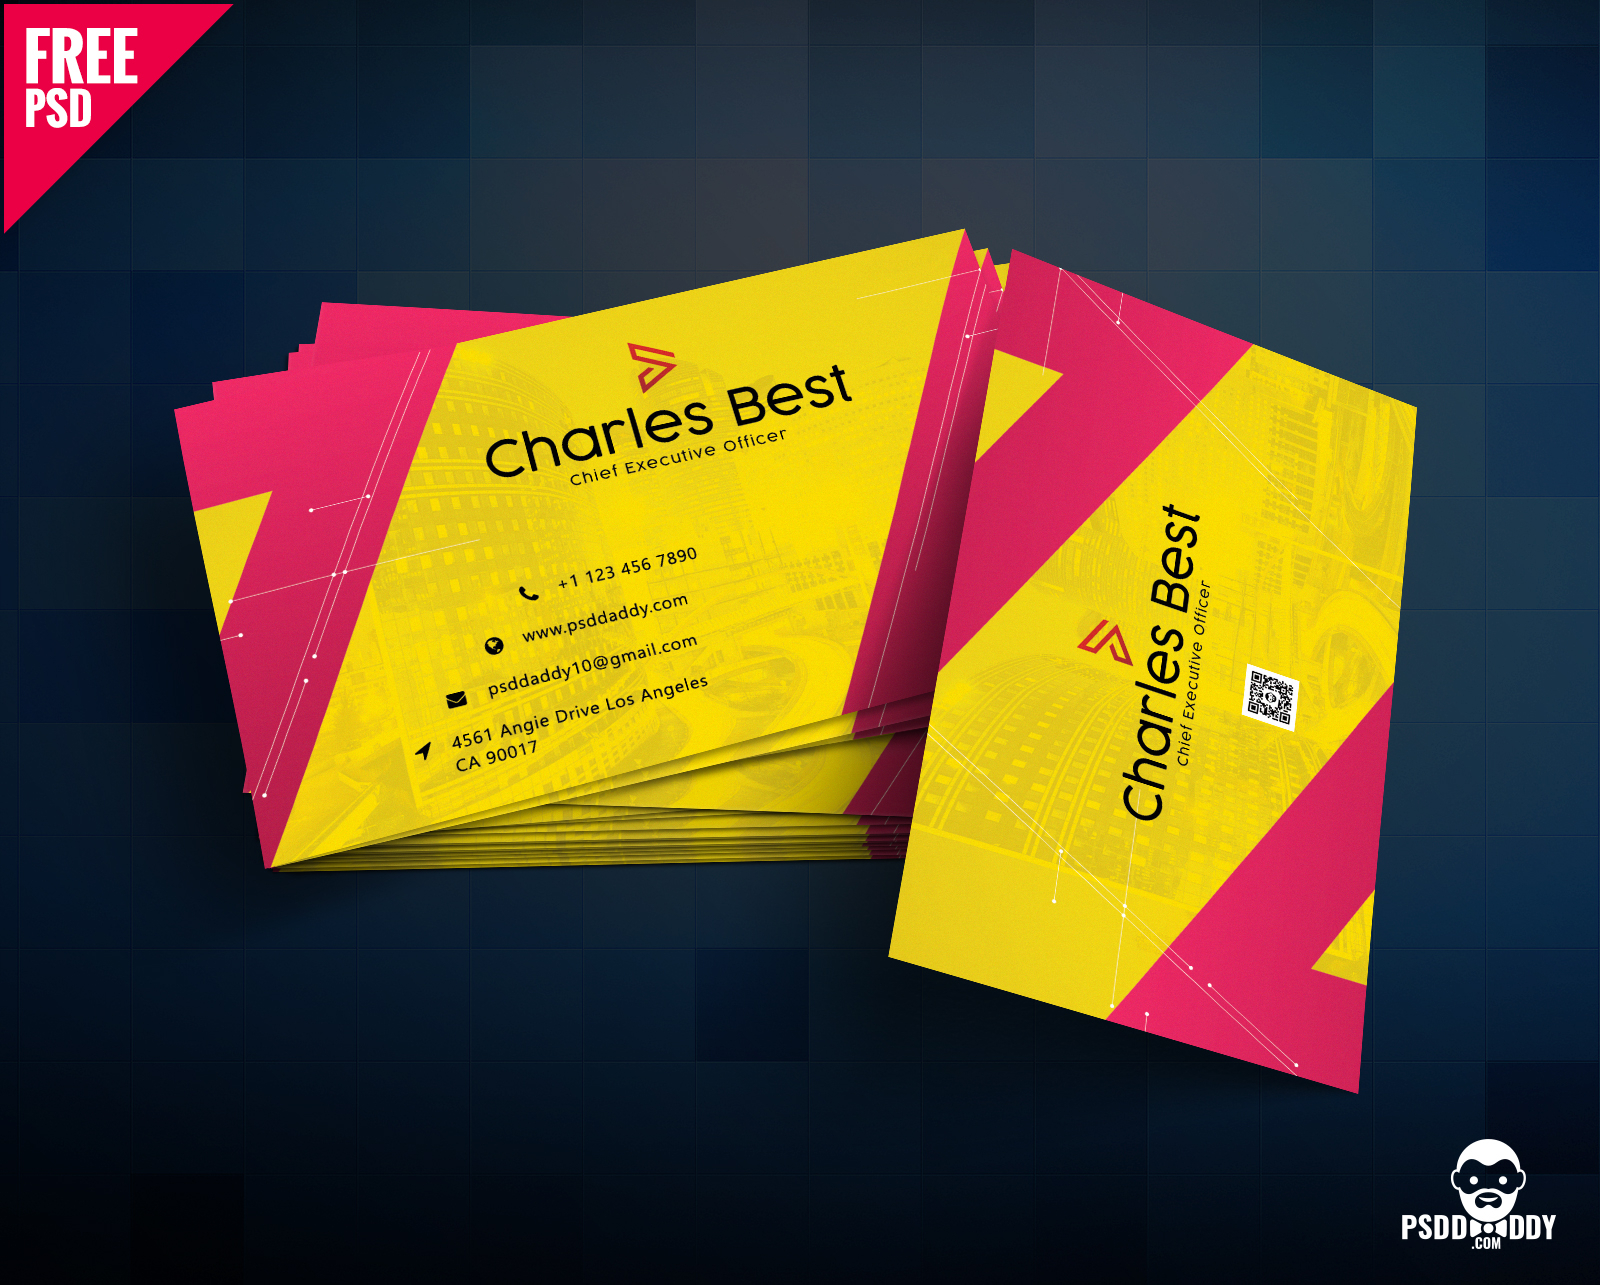 Download] Creative Business Card Free Psd | Psddaddy For Visiting Card Templates For Photoshop